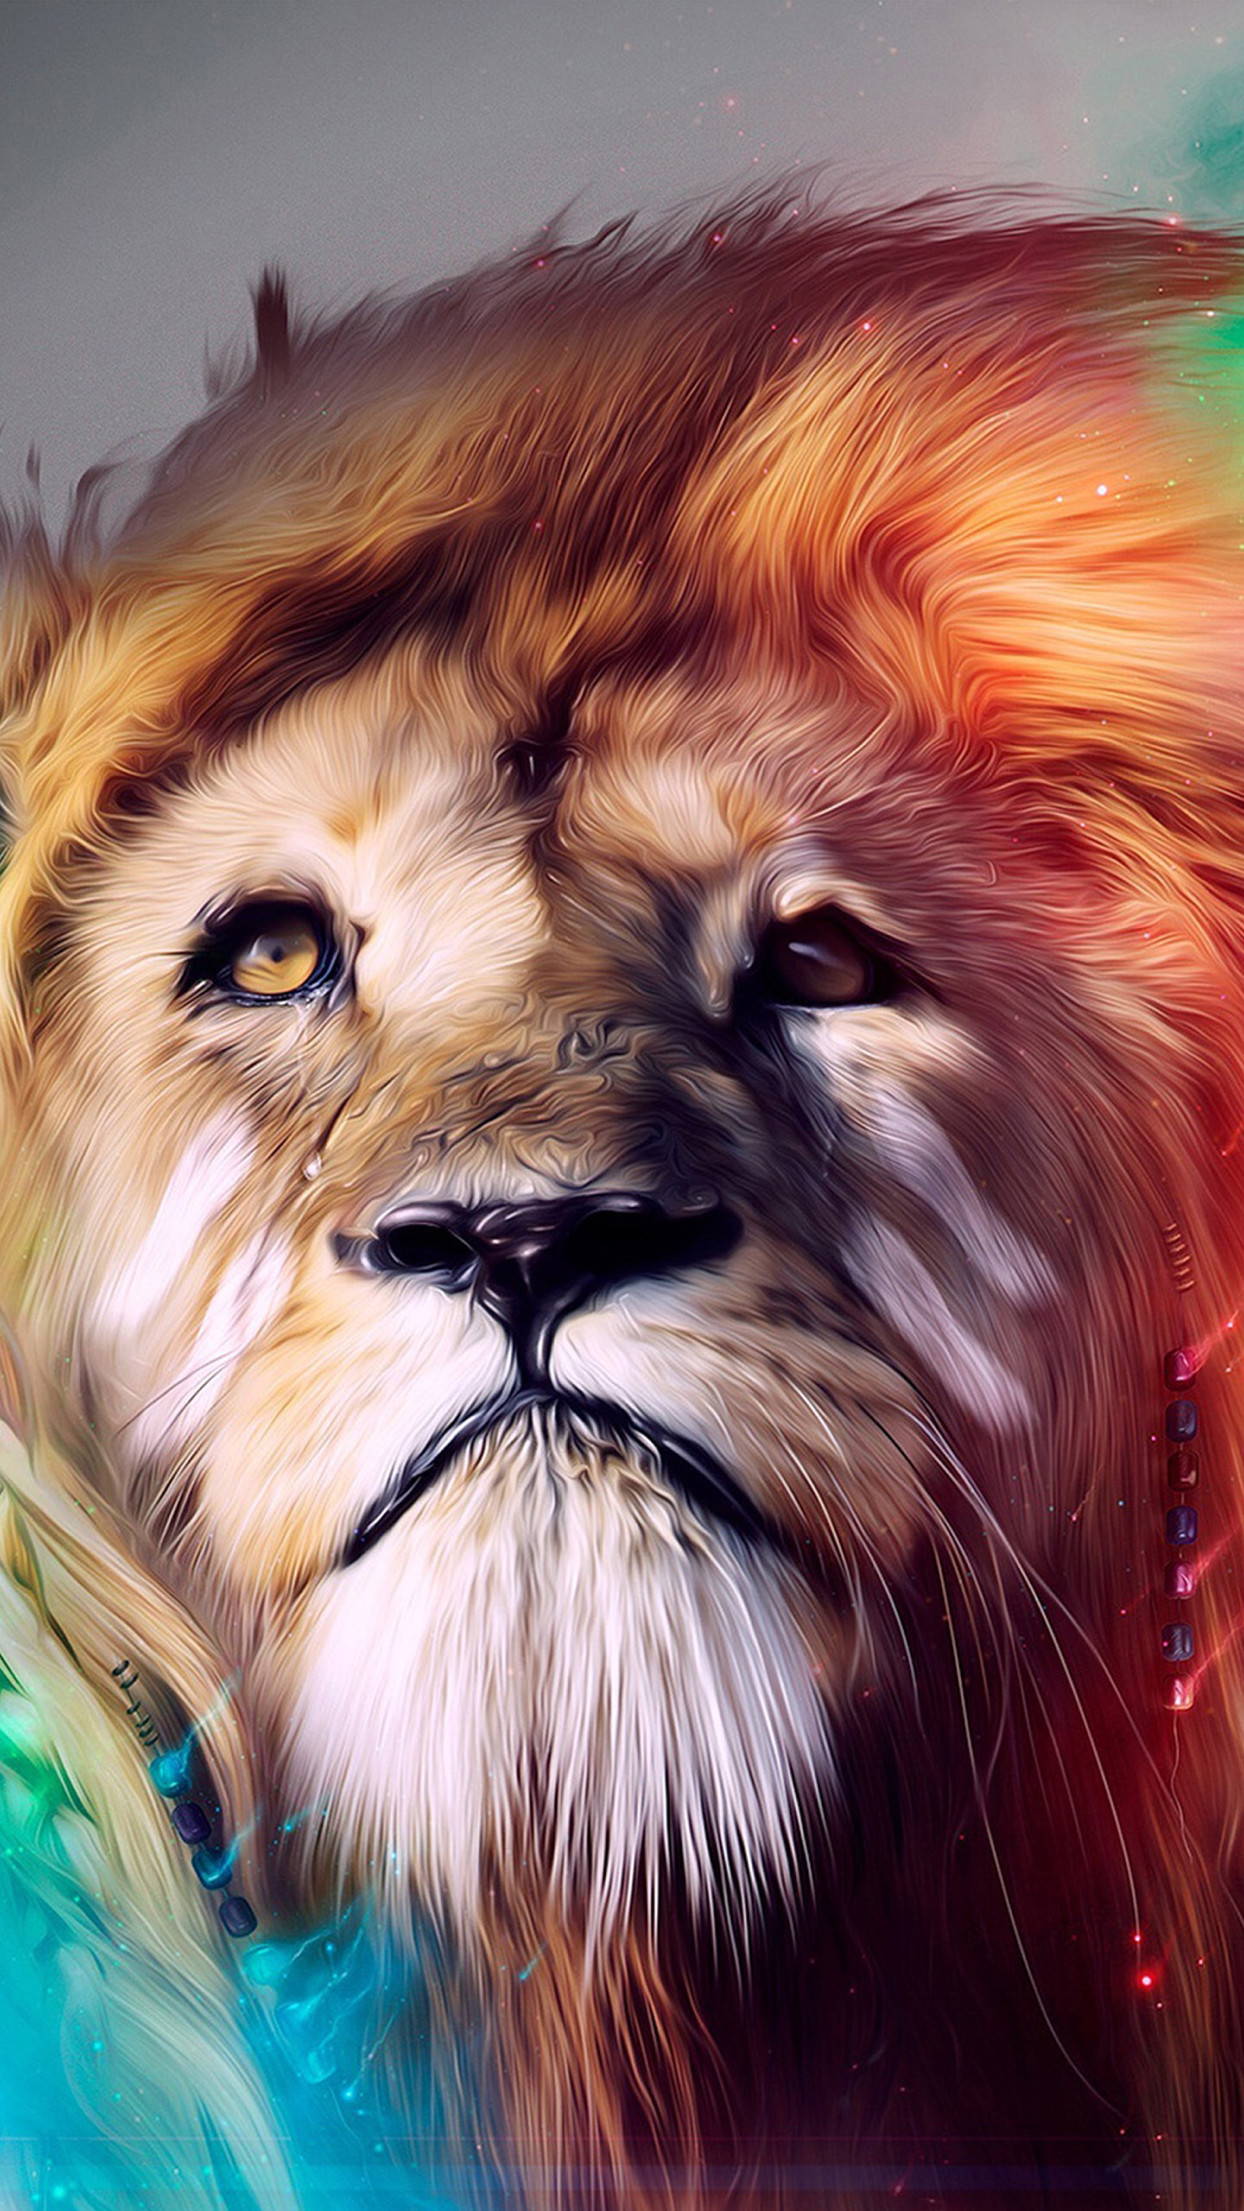 Red, Turquoise, orange, lion, abstract, apple, wallpaper, iPhone,